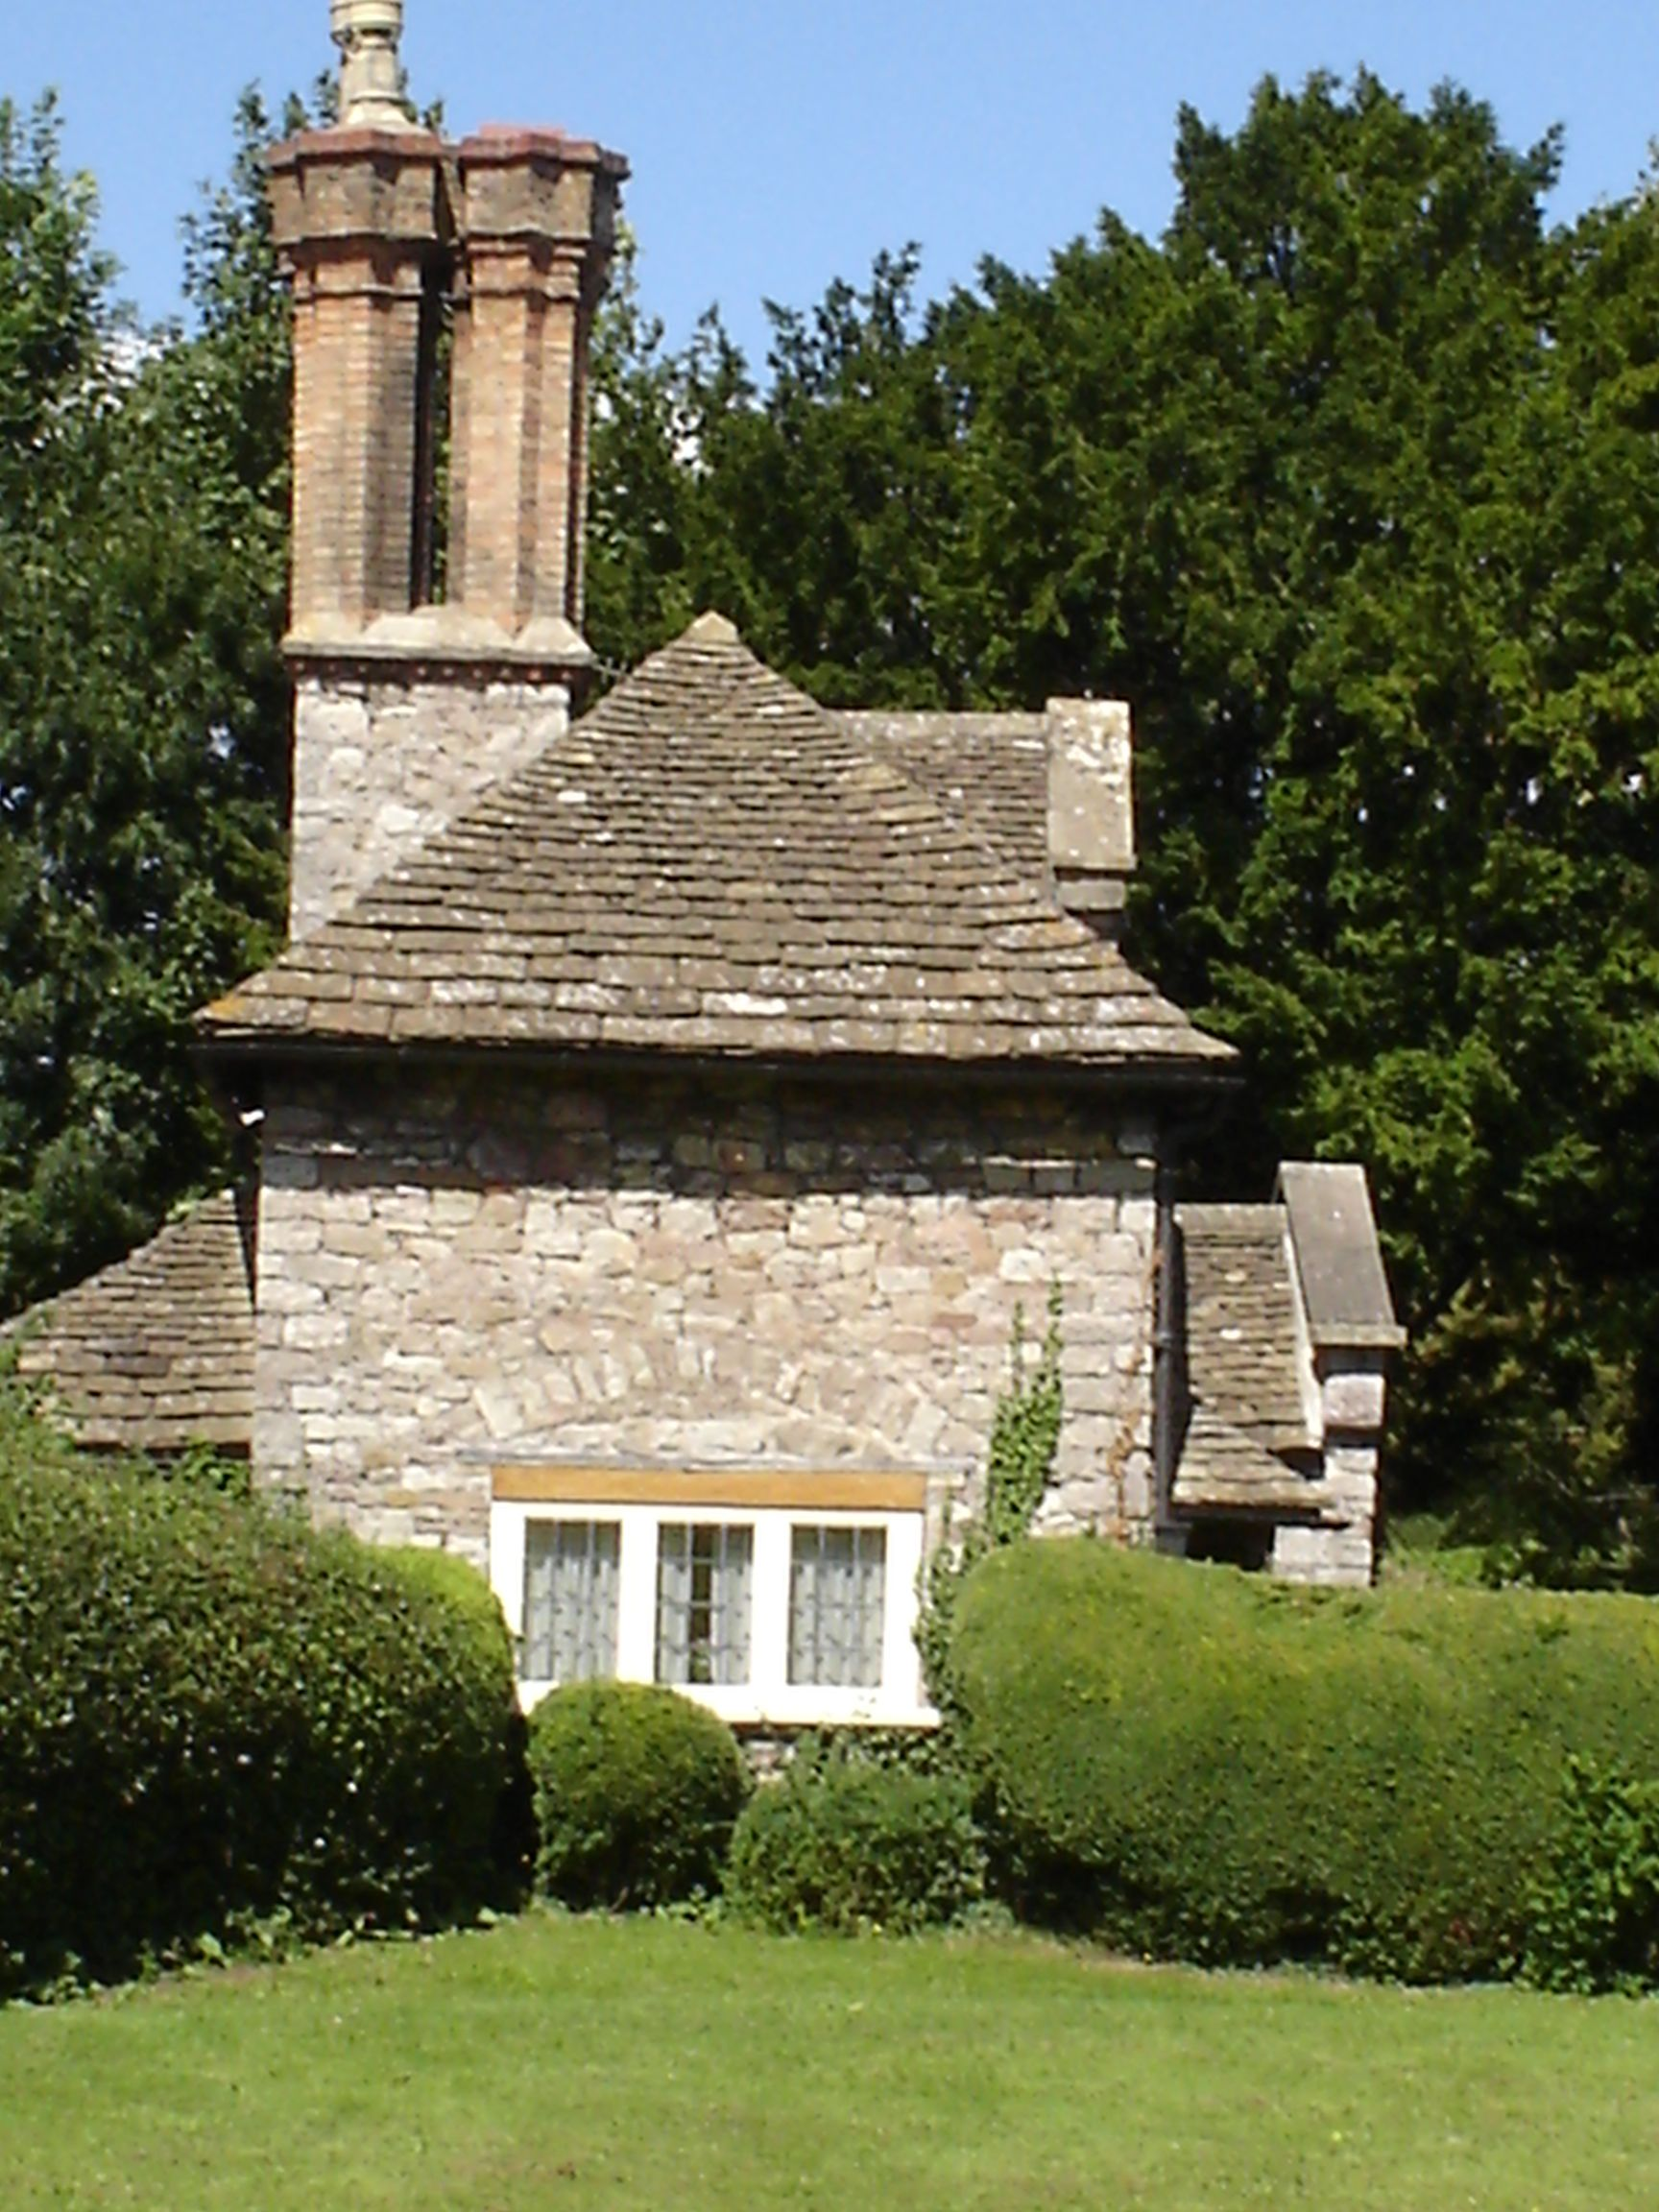 Great dual chimneys on cottage in Blaise Castle Hamlet in Bristol, England